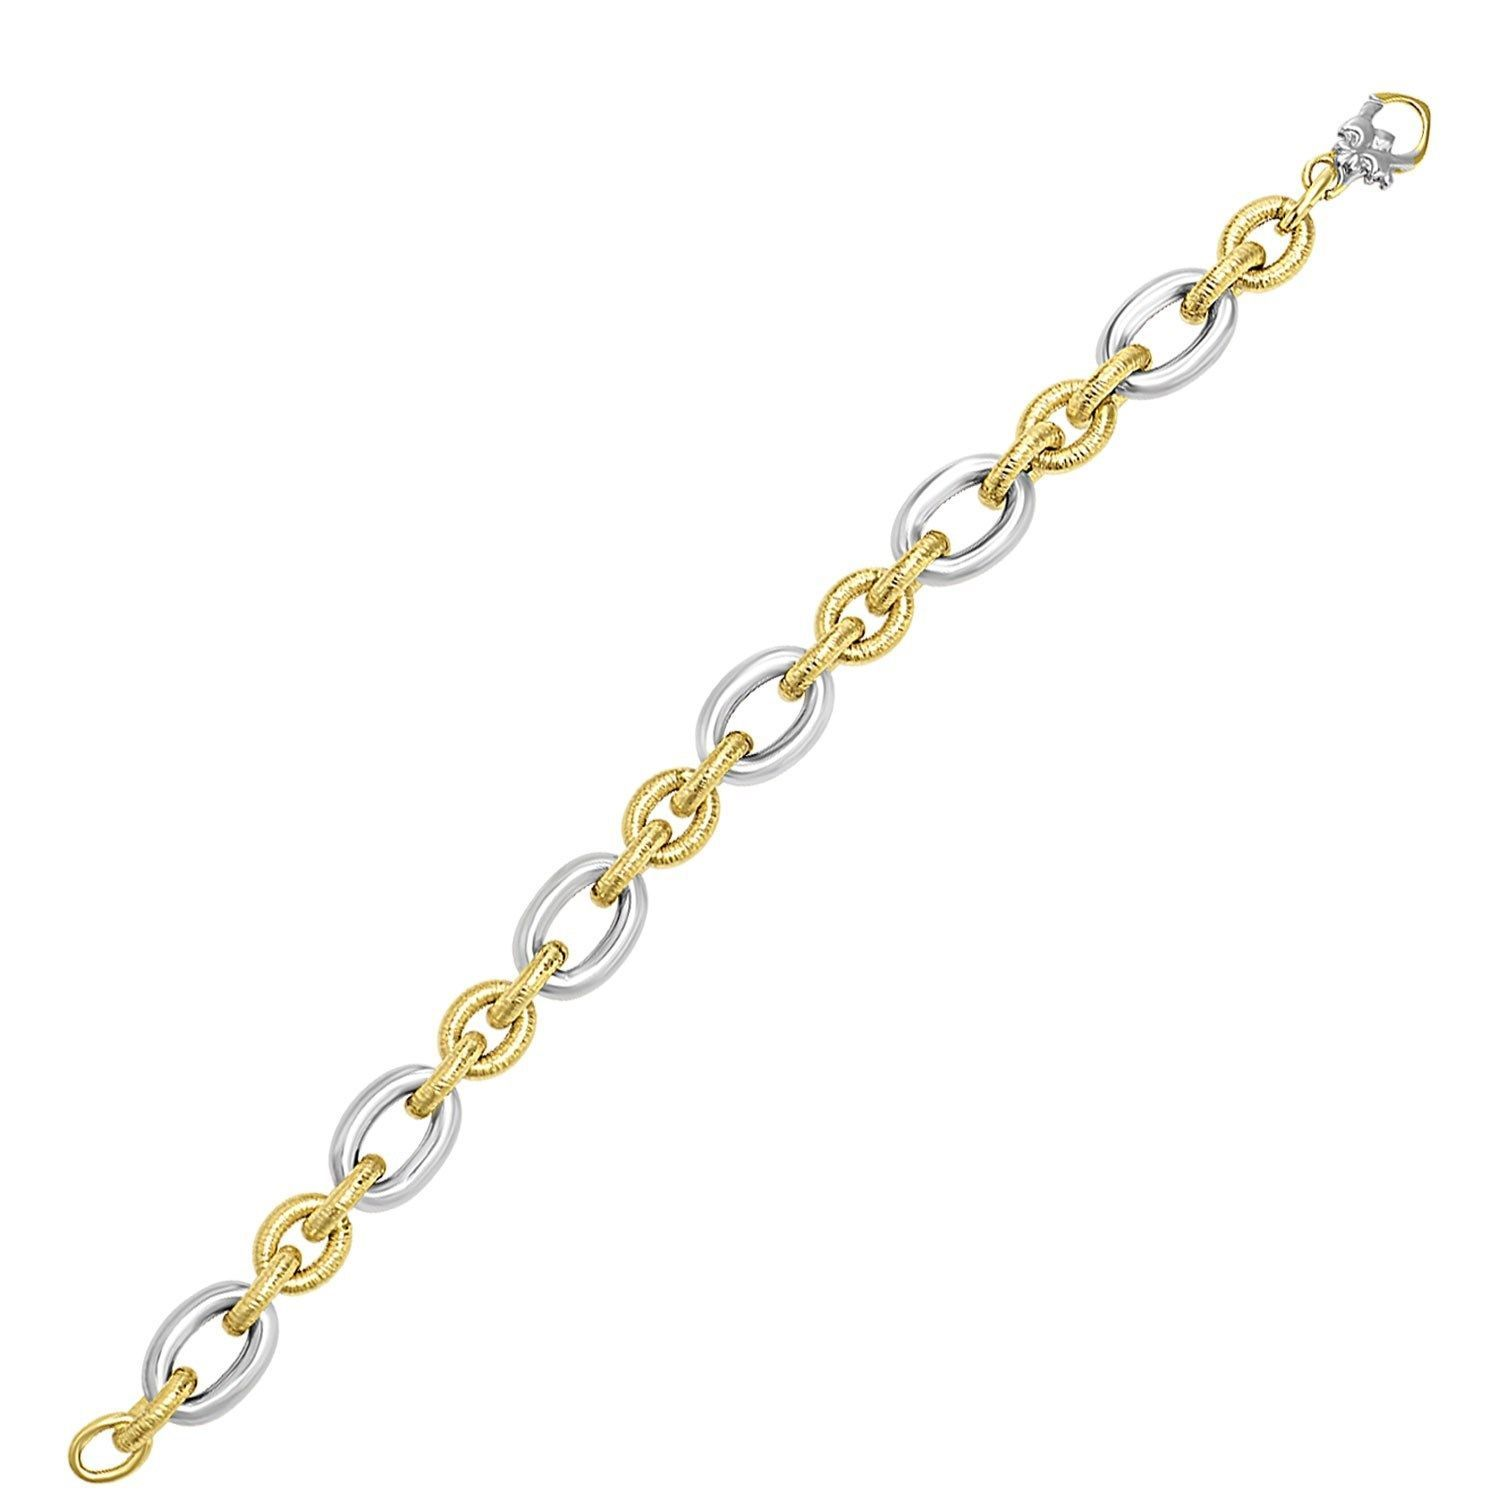 14k Two-Tone Gold Oval Link Bracelet with Textured and Smooth Links Cute Jewelry